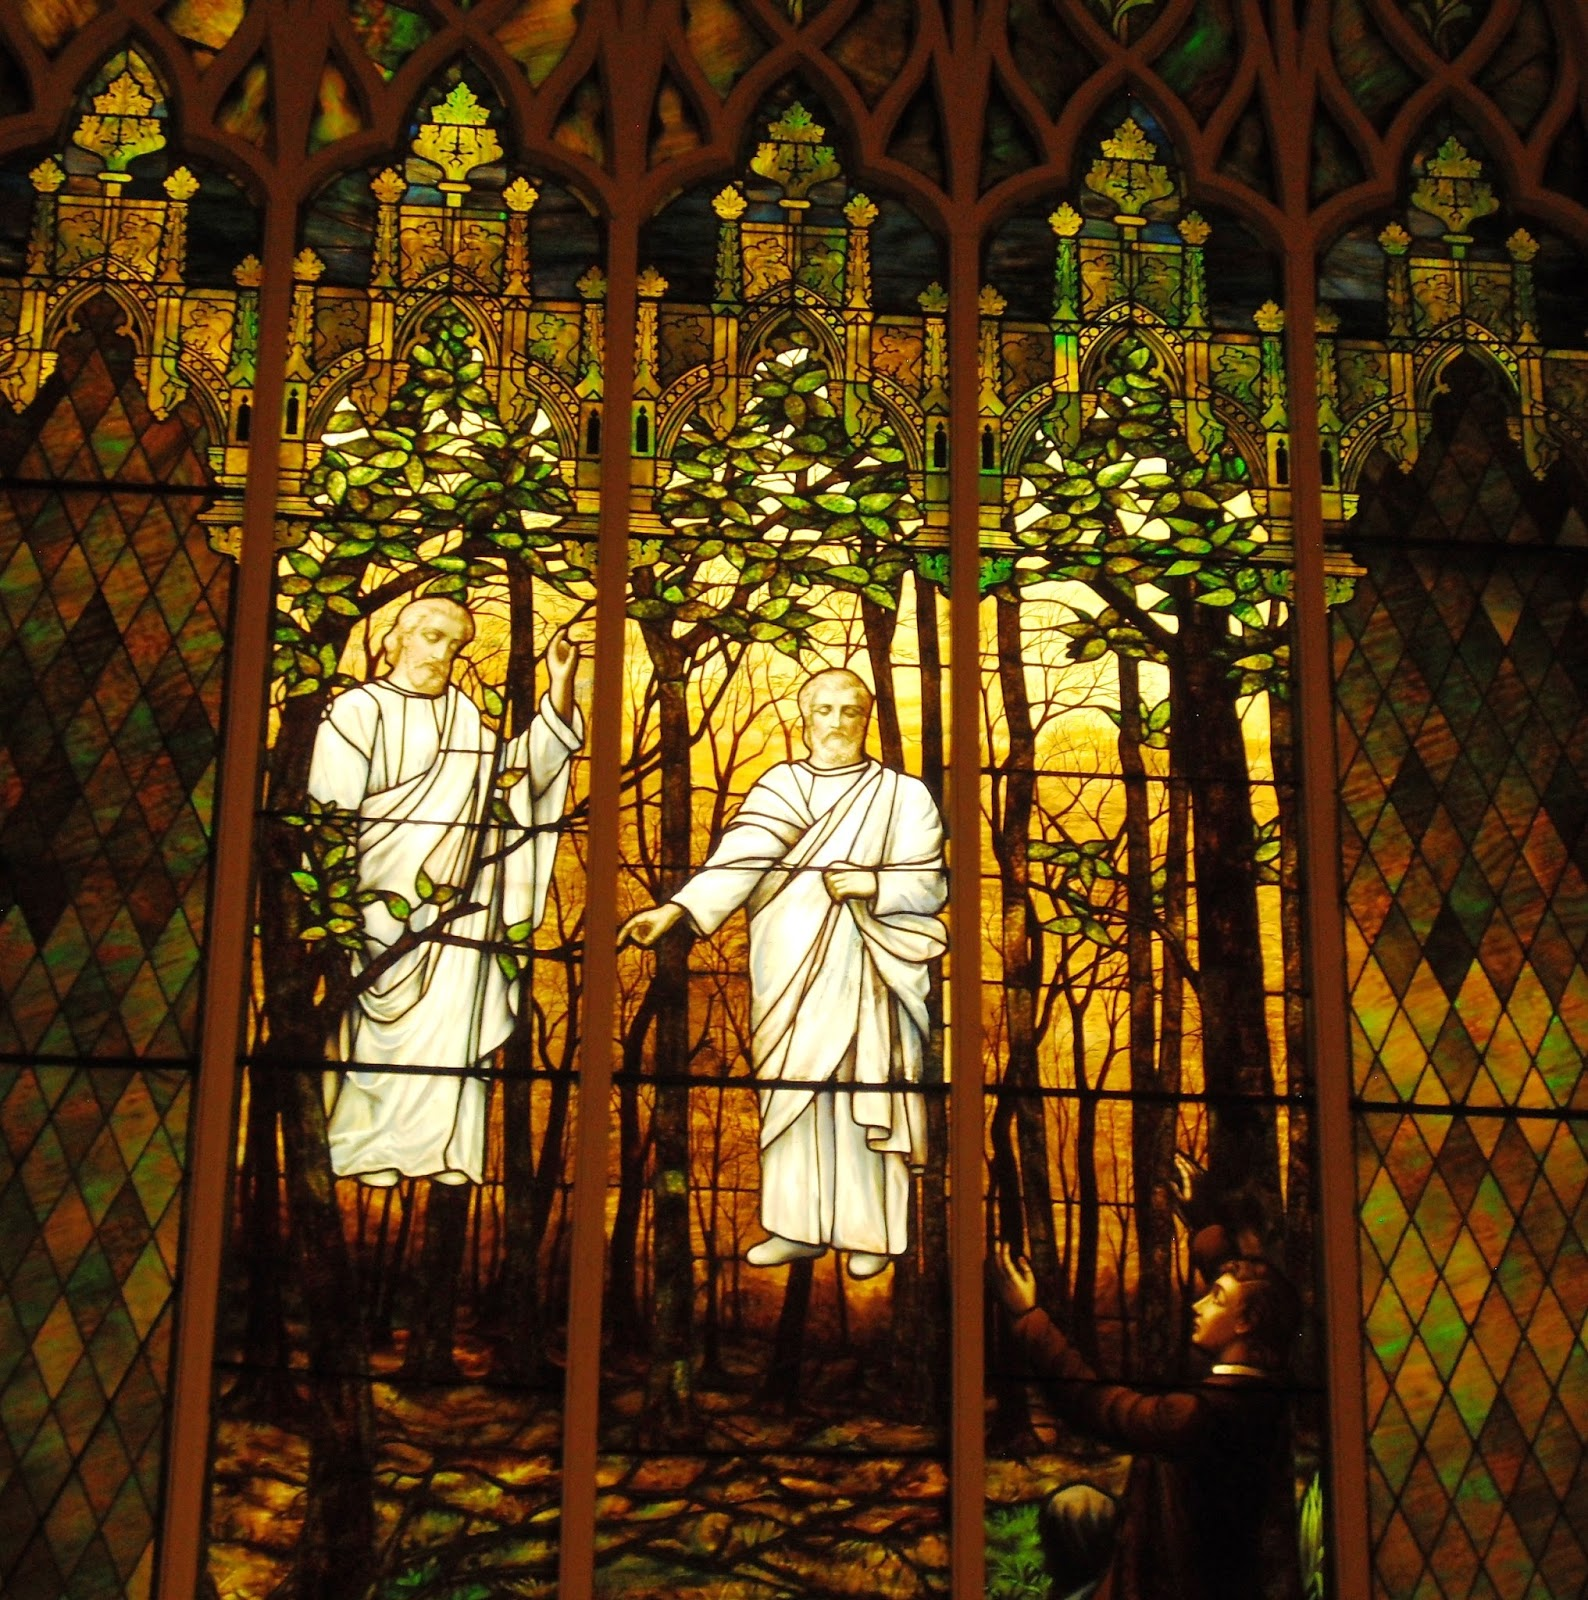 Historic LDS Architecture: Latter-day Stained Glass: Part 3 - In